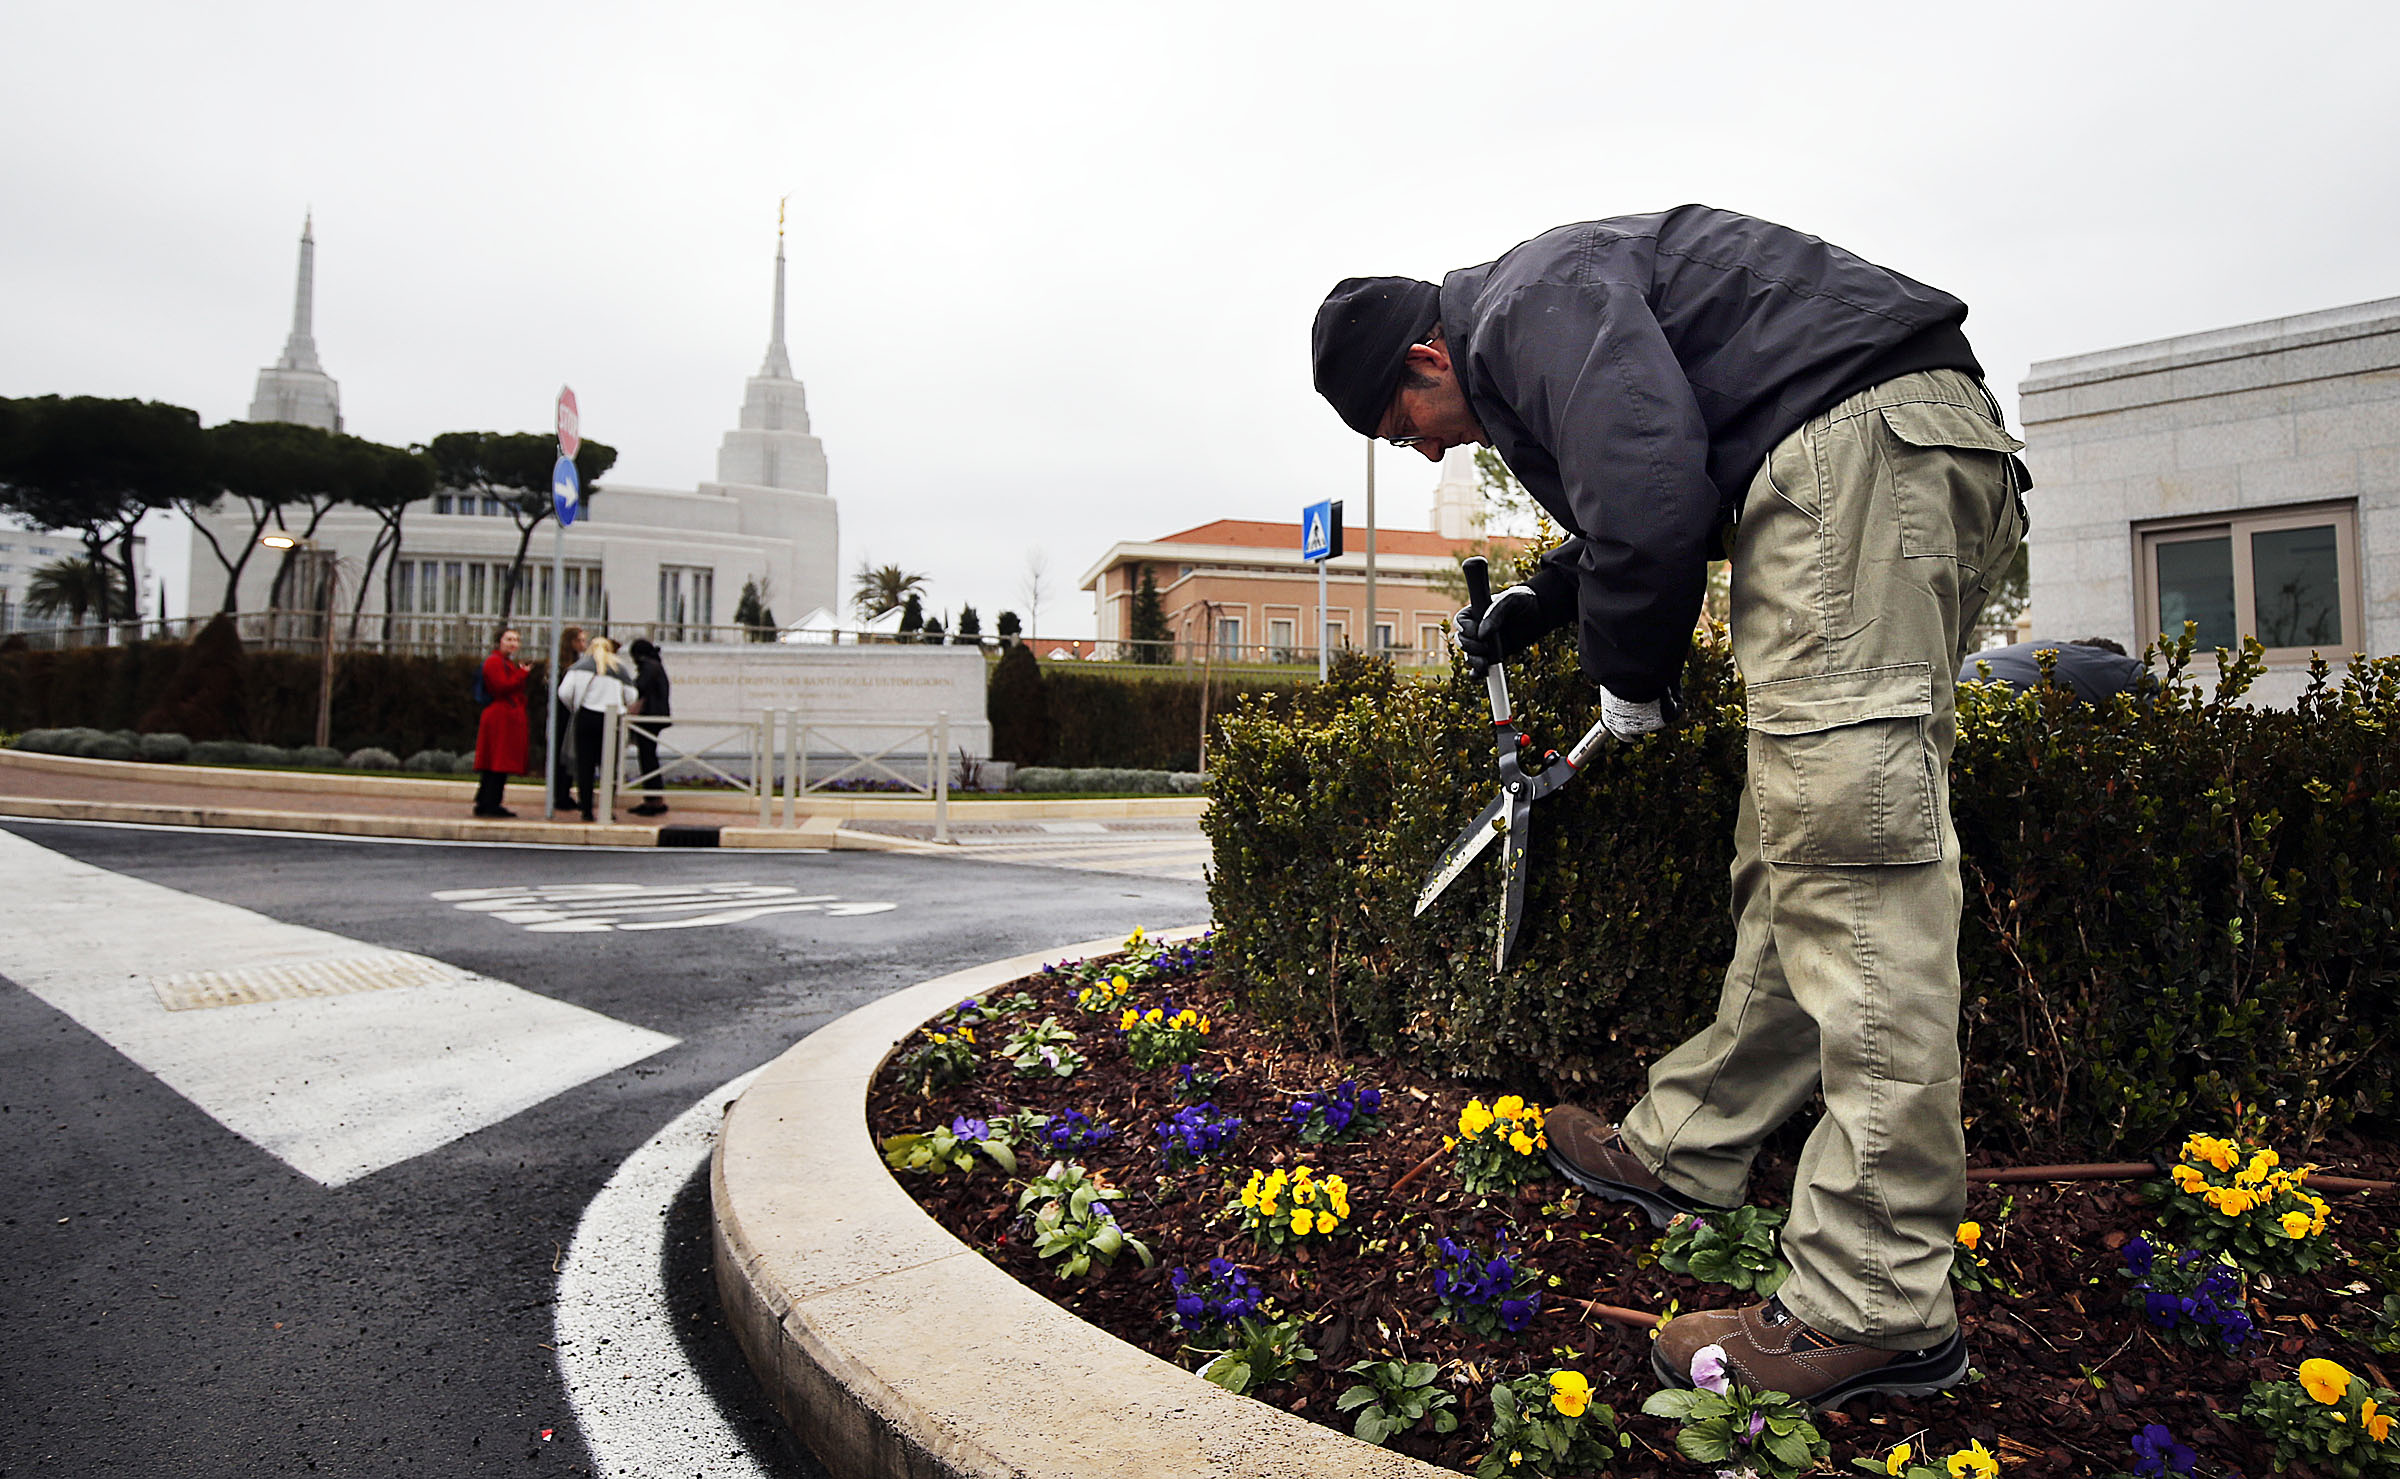 Giuliano Falehi trims shrubs outside the gate of the Rome Italy Temple of The Church of Jesus Christ of Latter-day Saints on Monday, Jan. 14, 2019.